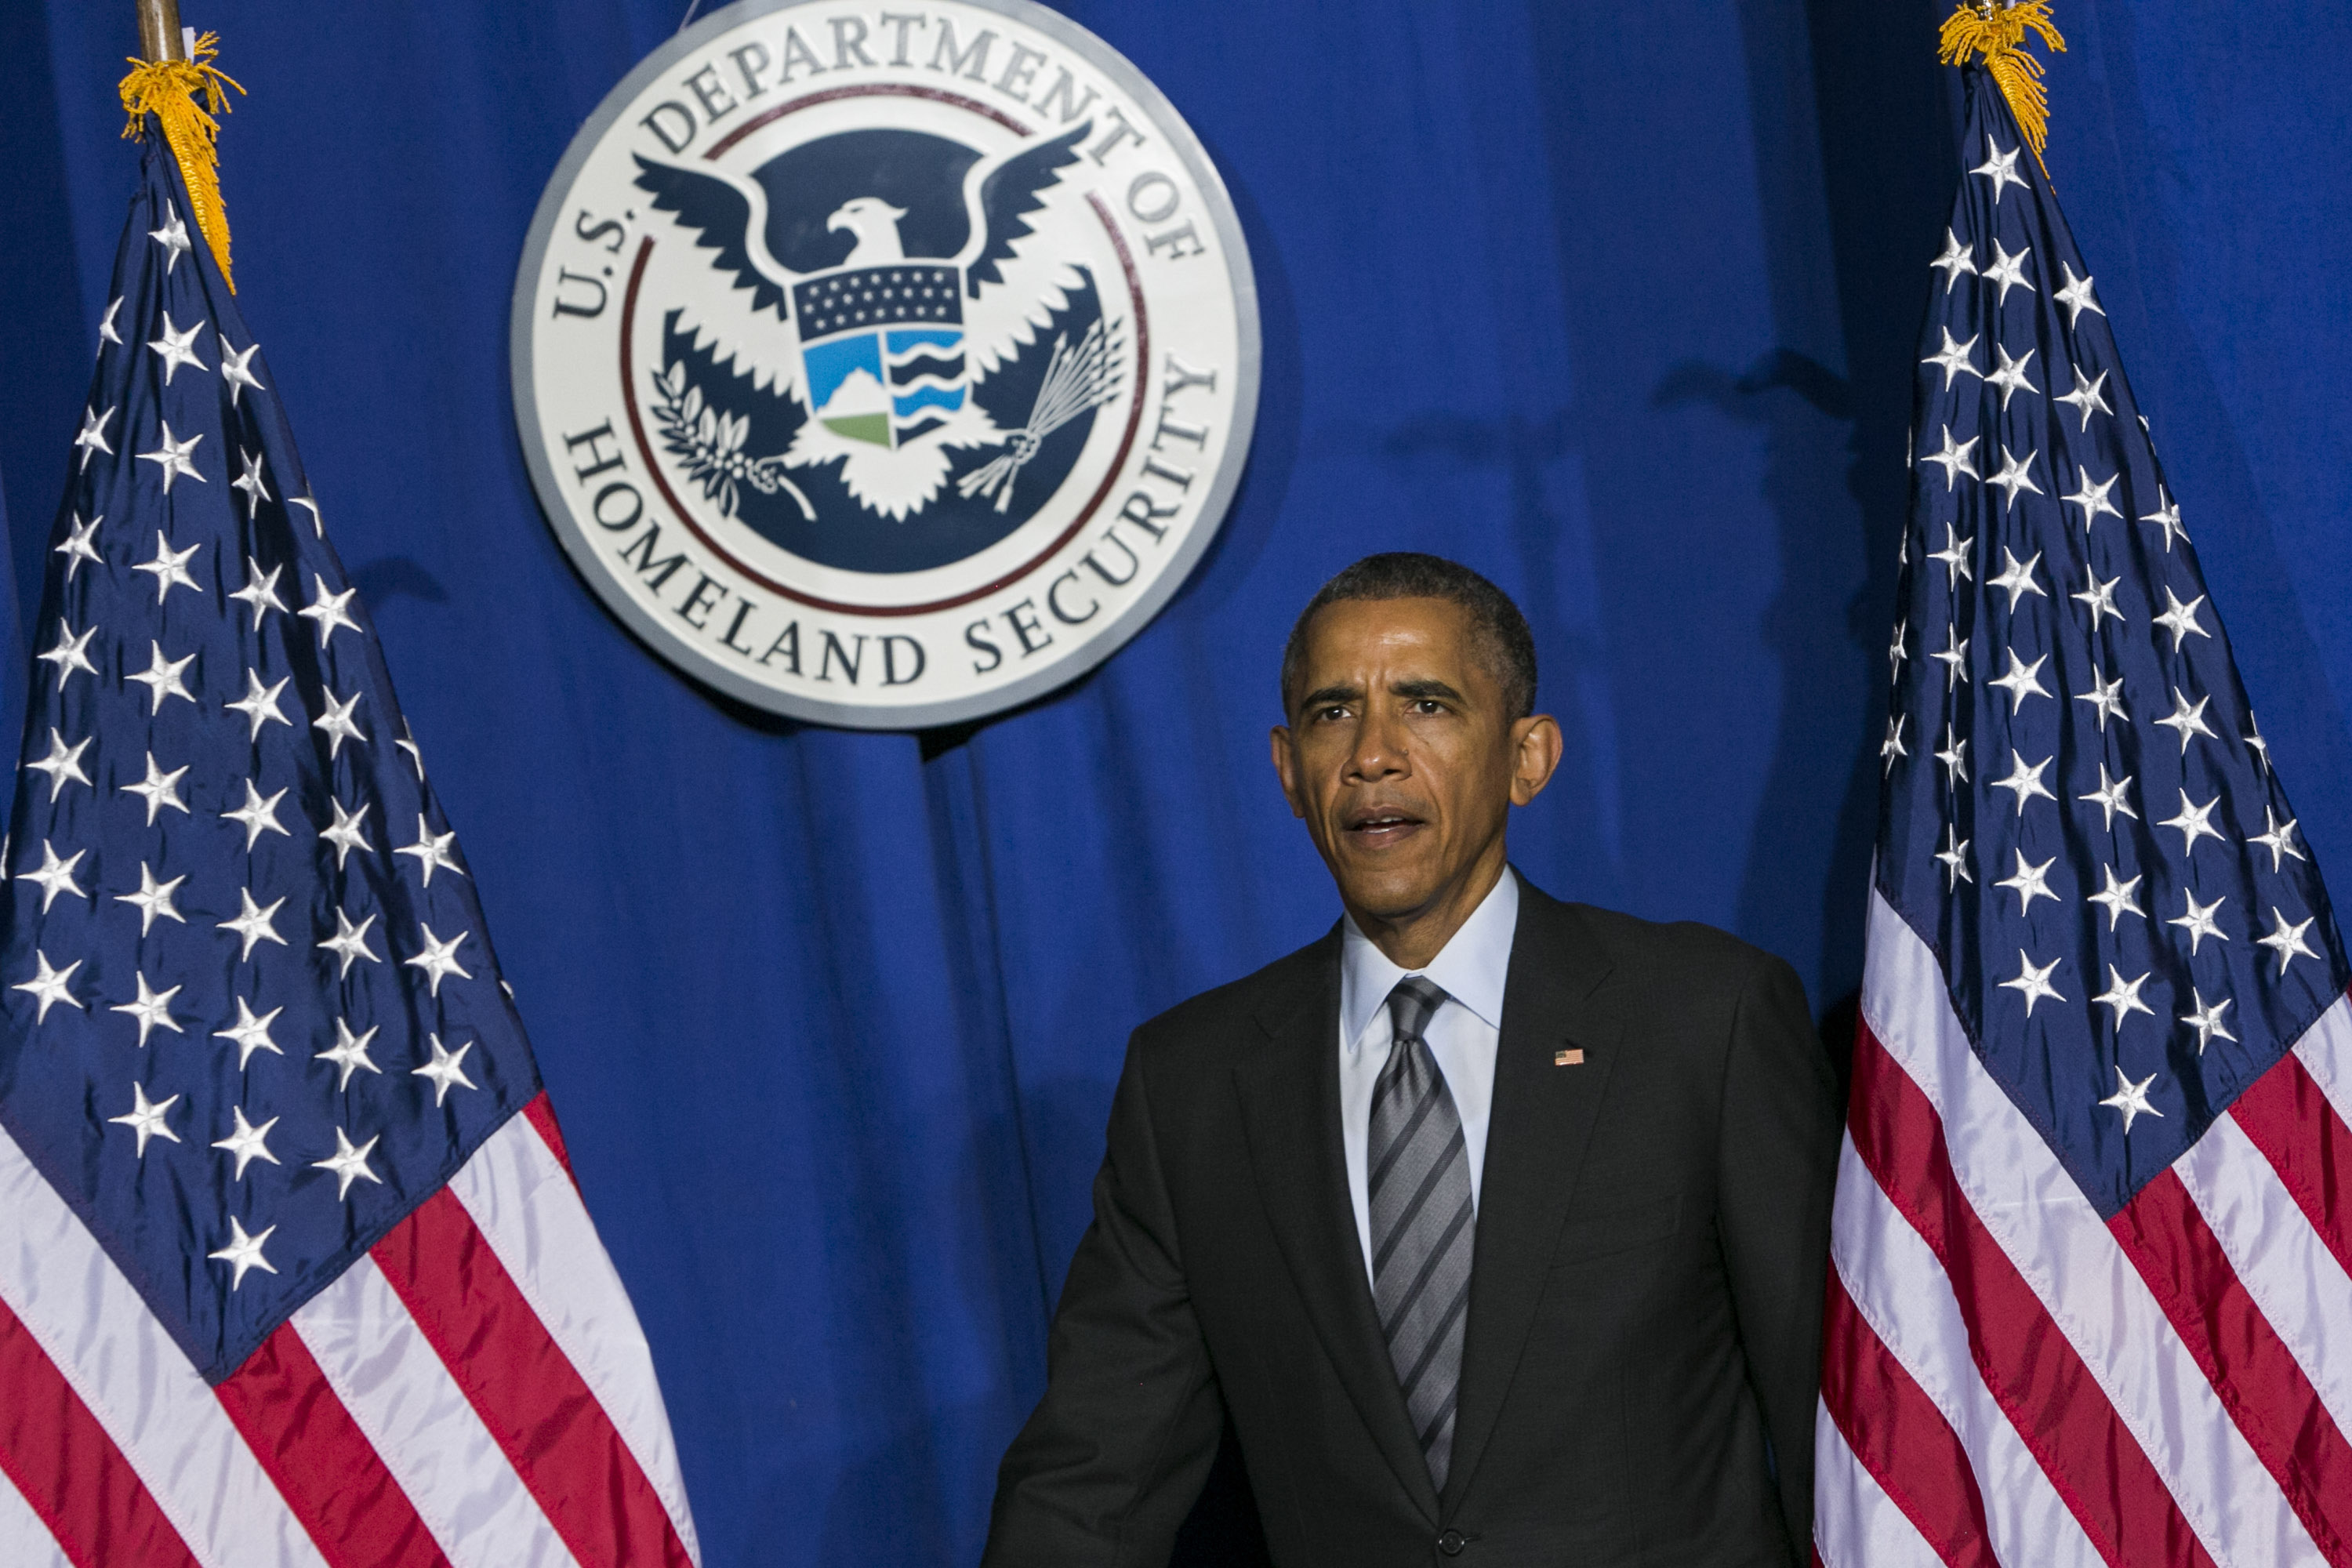 U.S. President Barack Obama arrives to deliver remarks on his Fiscal Year 2016 Budget at the Department of Homeland Security (DHS) in Washington, D.C., U.S., on Feb. 2, 2015. Obama sent Congress a $4 trillion budget that would raise taxes on corporations and the nation's top earners, spend more on infrastructure and housing, and stabilize, but not eliminate, the annual budget deficit. Photographer: Kristoffer Tripplaar/Pool via Bloomberg *** Local Caption *** Barack Obama